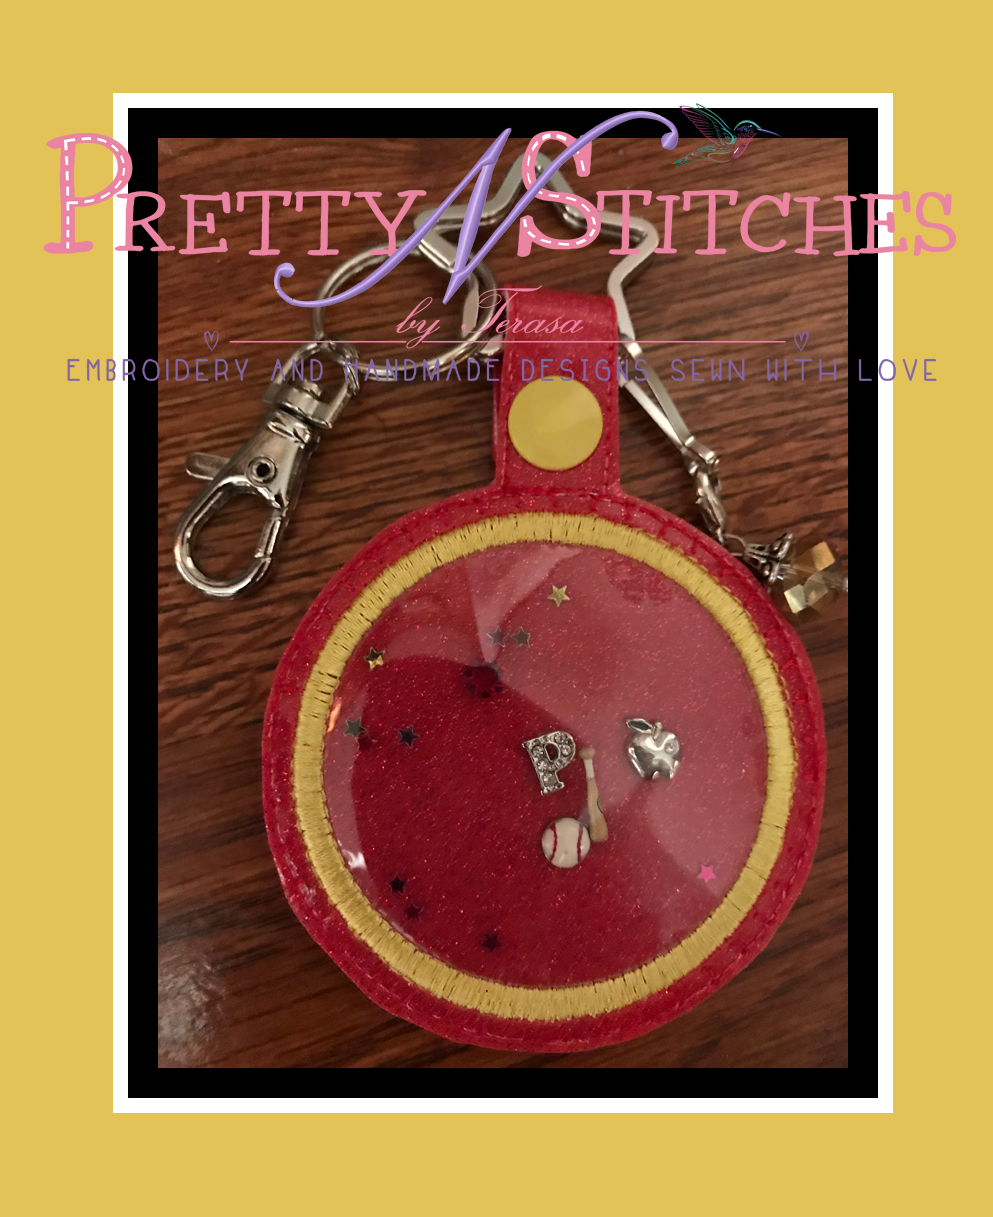 The Hoop Embroidery Designs Circle Shaped Charm and Applique Key Fob for hoop size 4X4 and 5X7